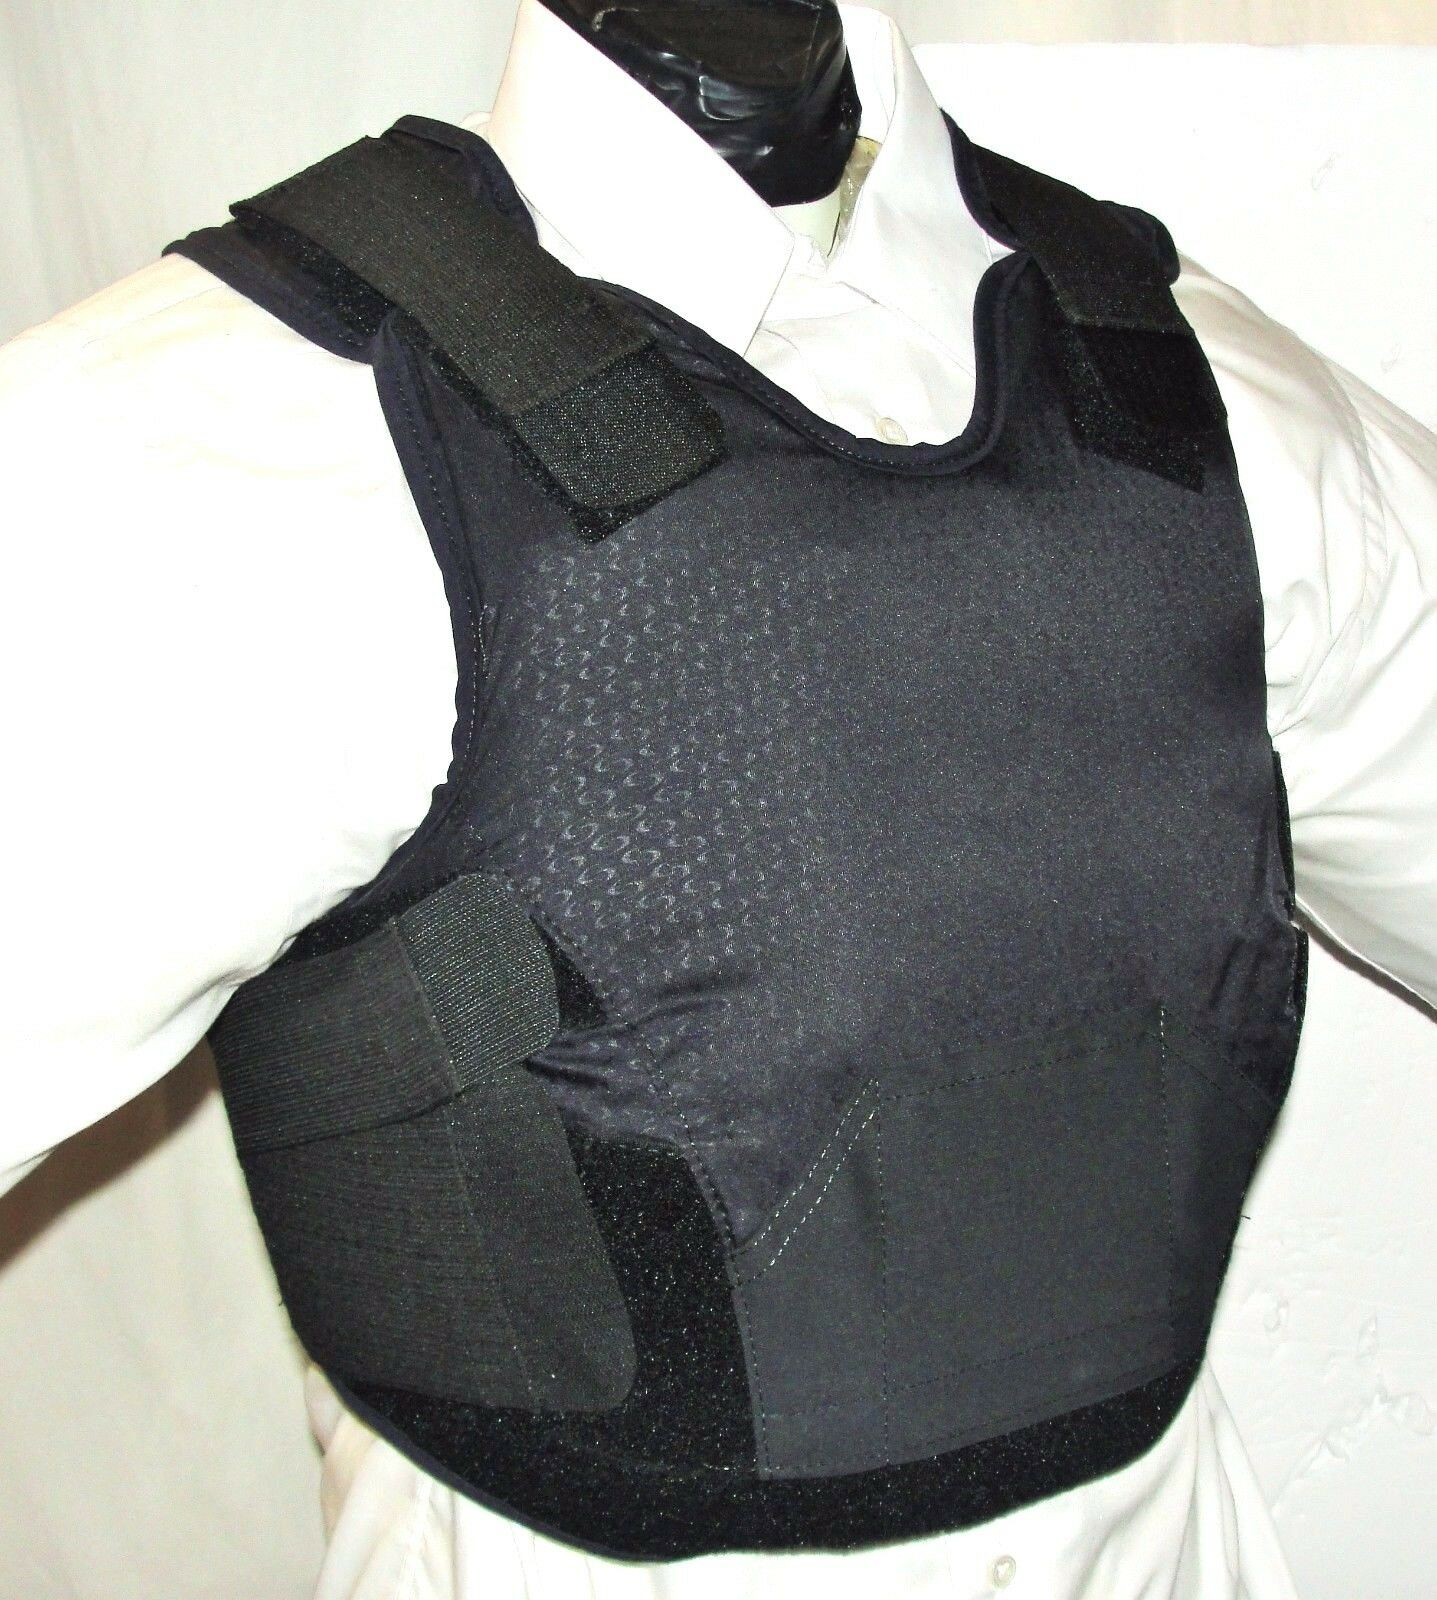 Large  Female IIIA BulletProof Concealable Body Armor Carrier Vest Inserts  online fashion shopping